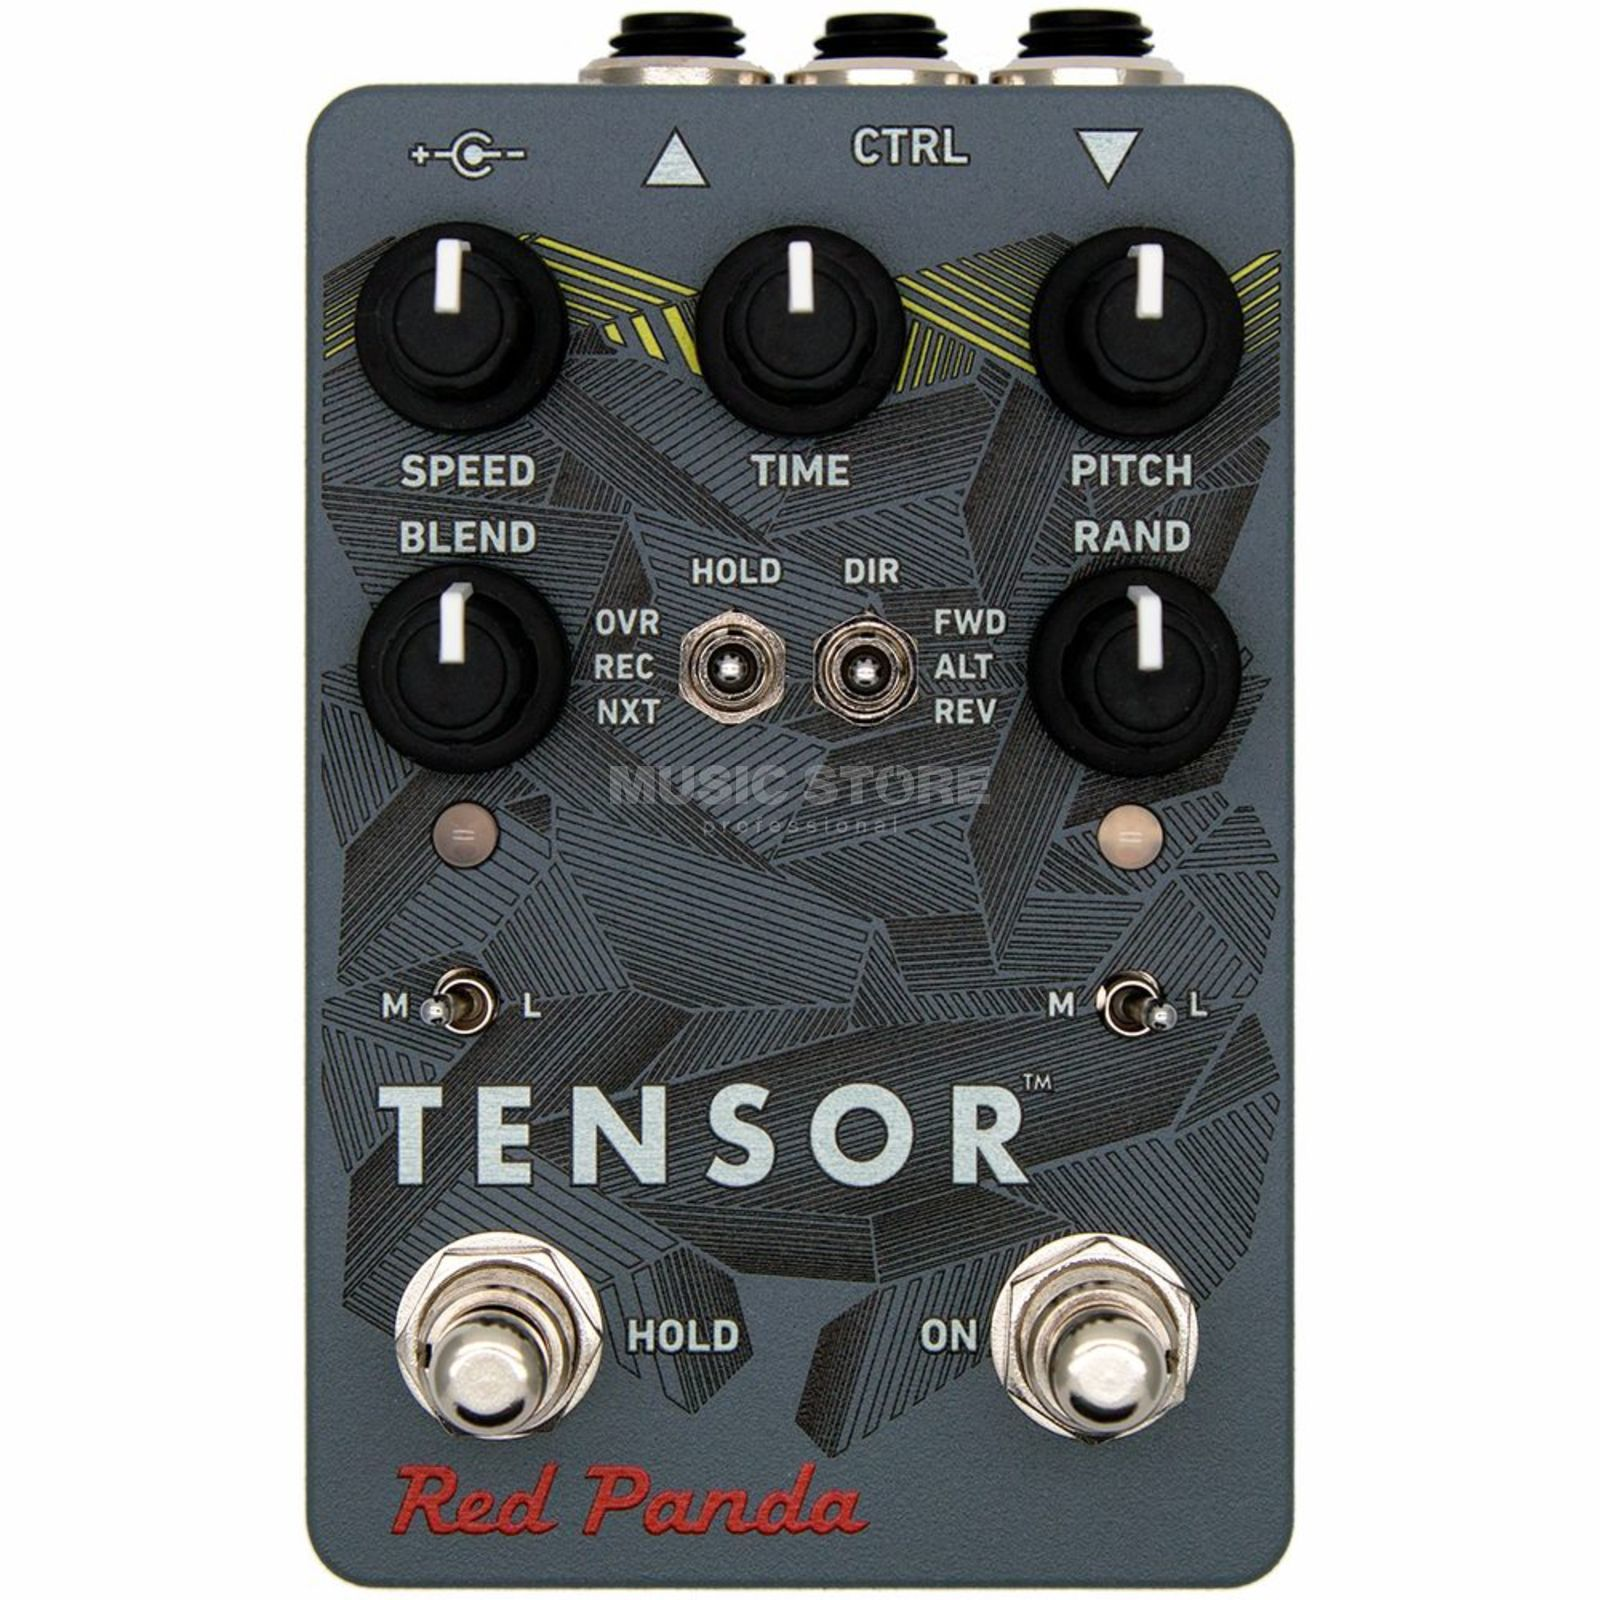 Red Panda Tensor Product Image